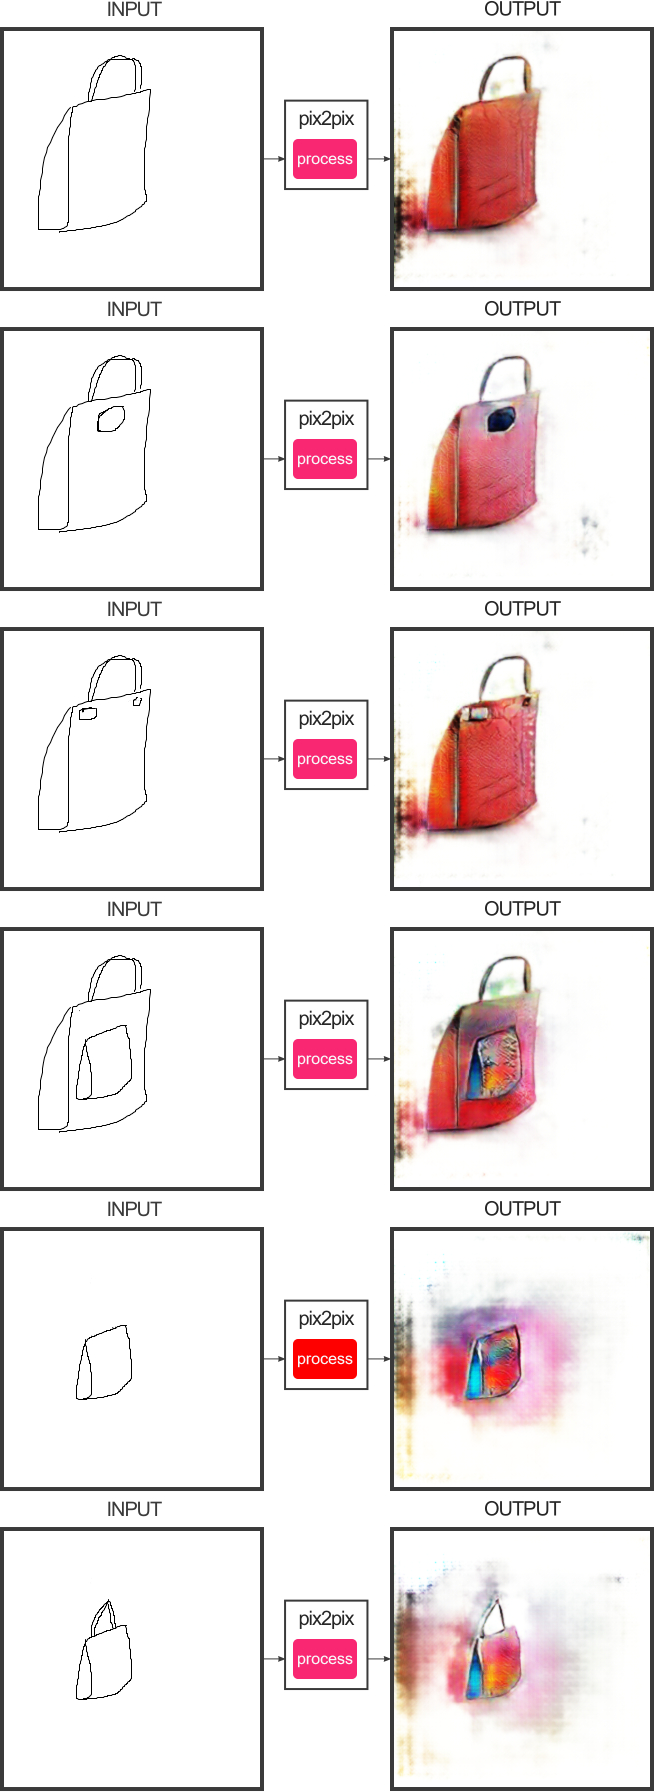 Screenshots of more handbags generated by Hesse's pix2pix from my sketches.